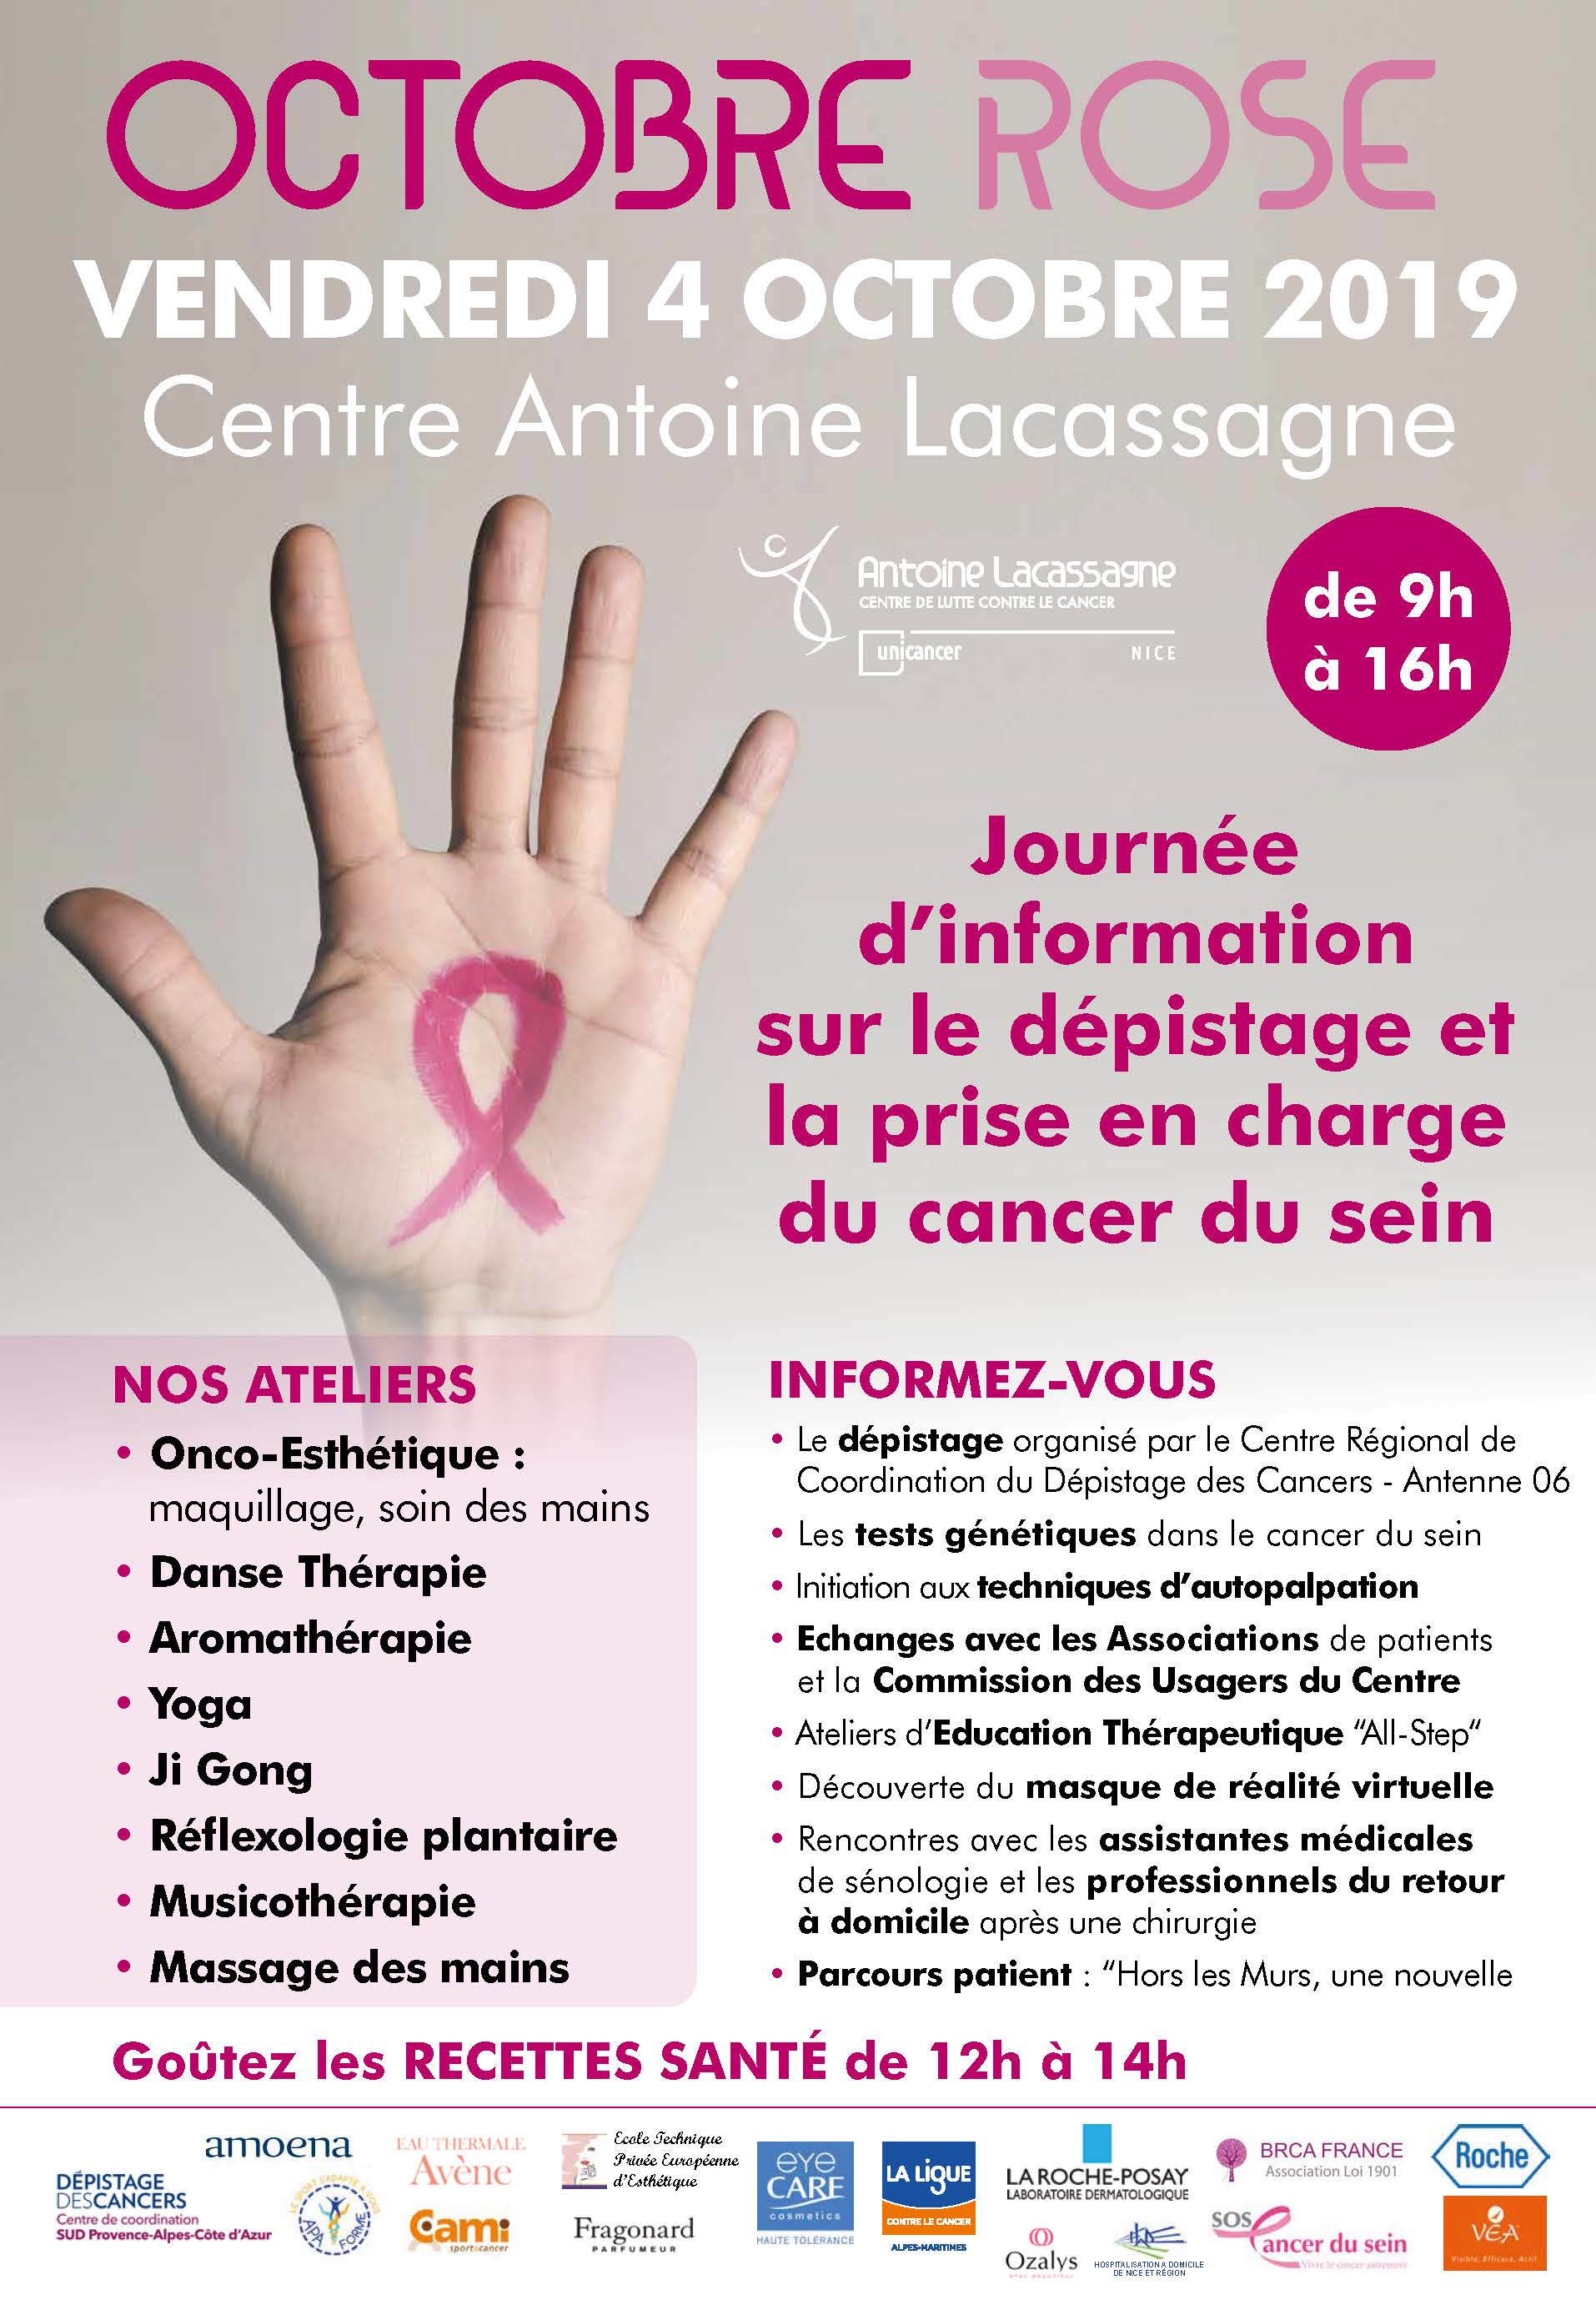 affiche octobre rose 2019 web 24 09 19